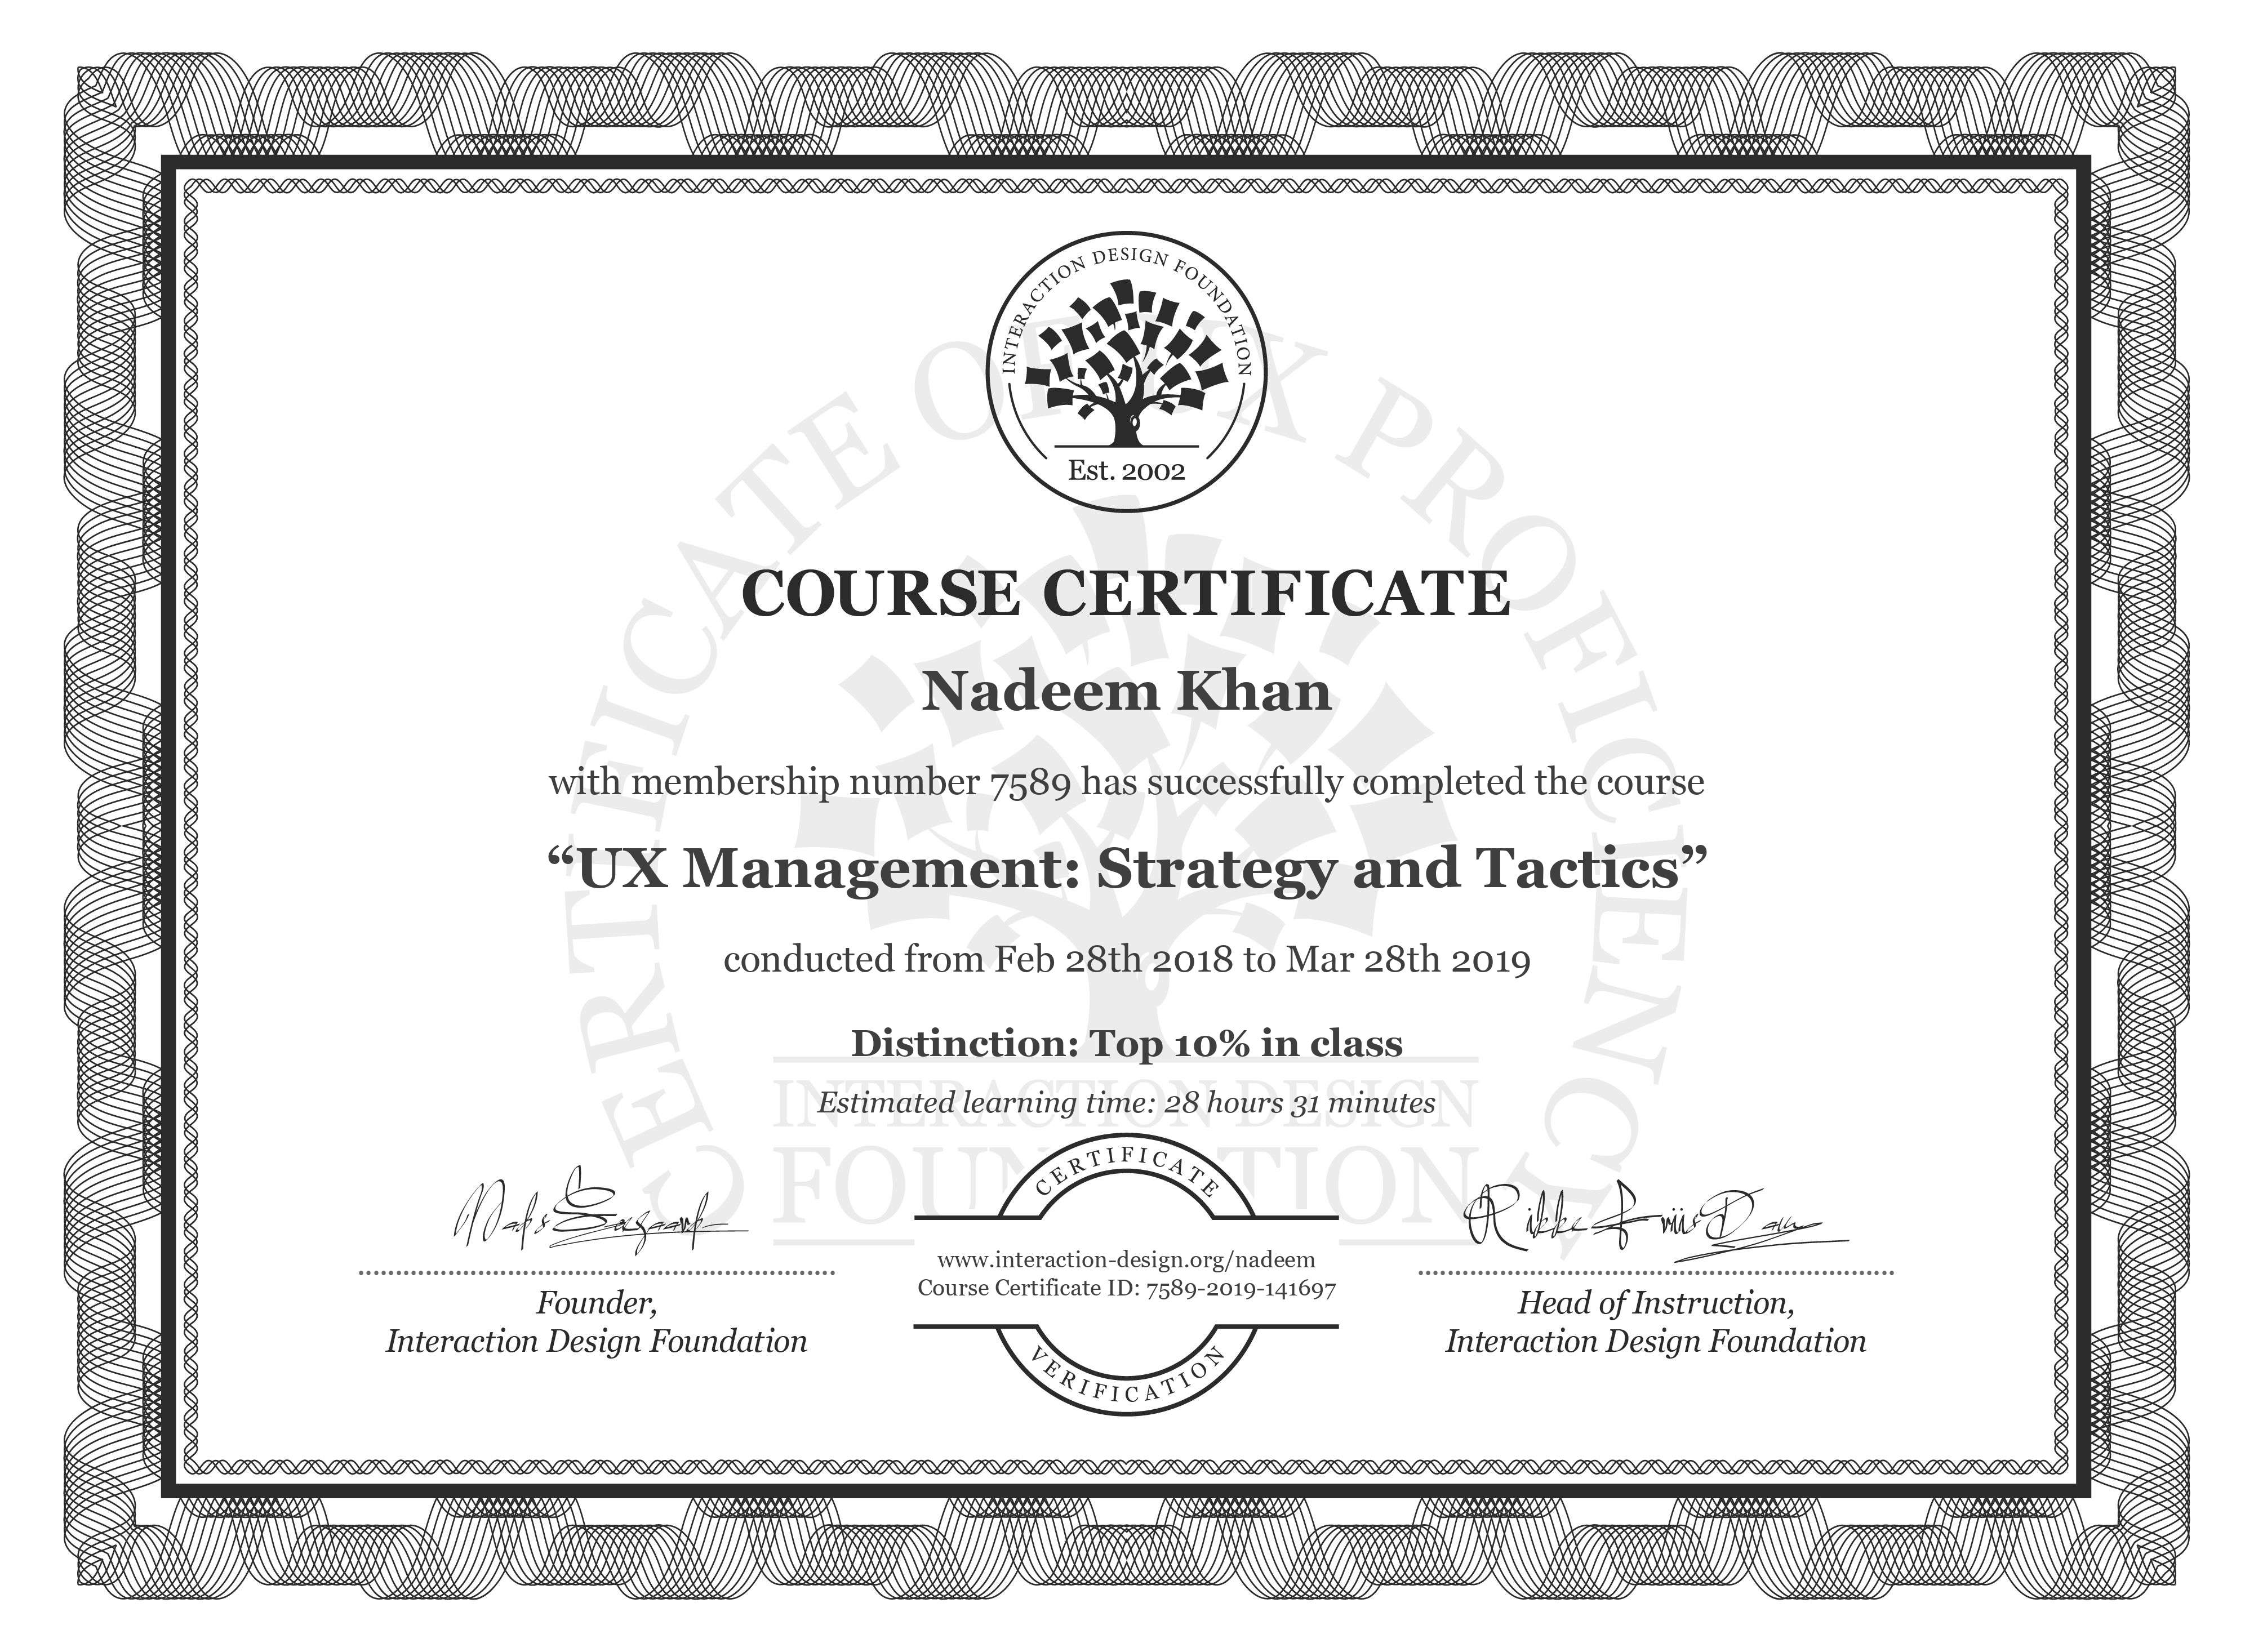 Nadeem Khan's Course Certificate: UX Management: Strategy and Tactics